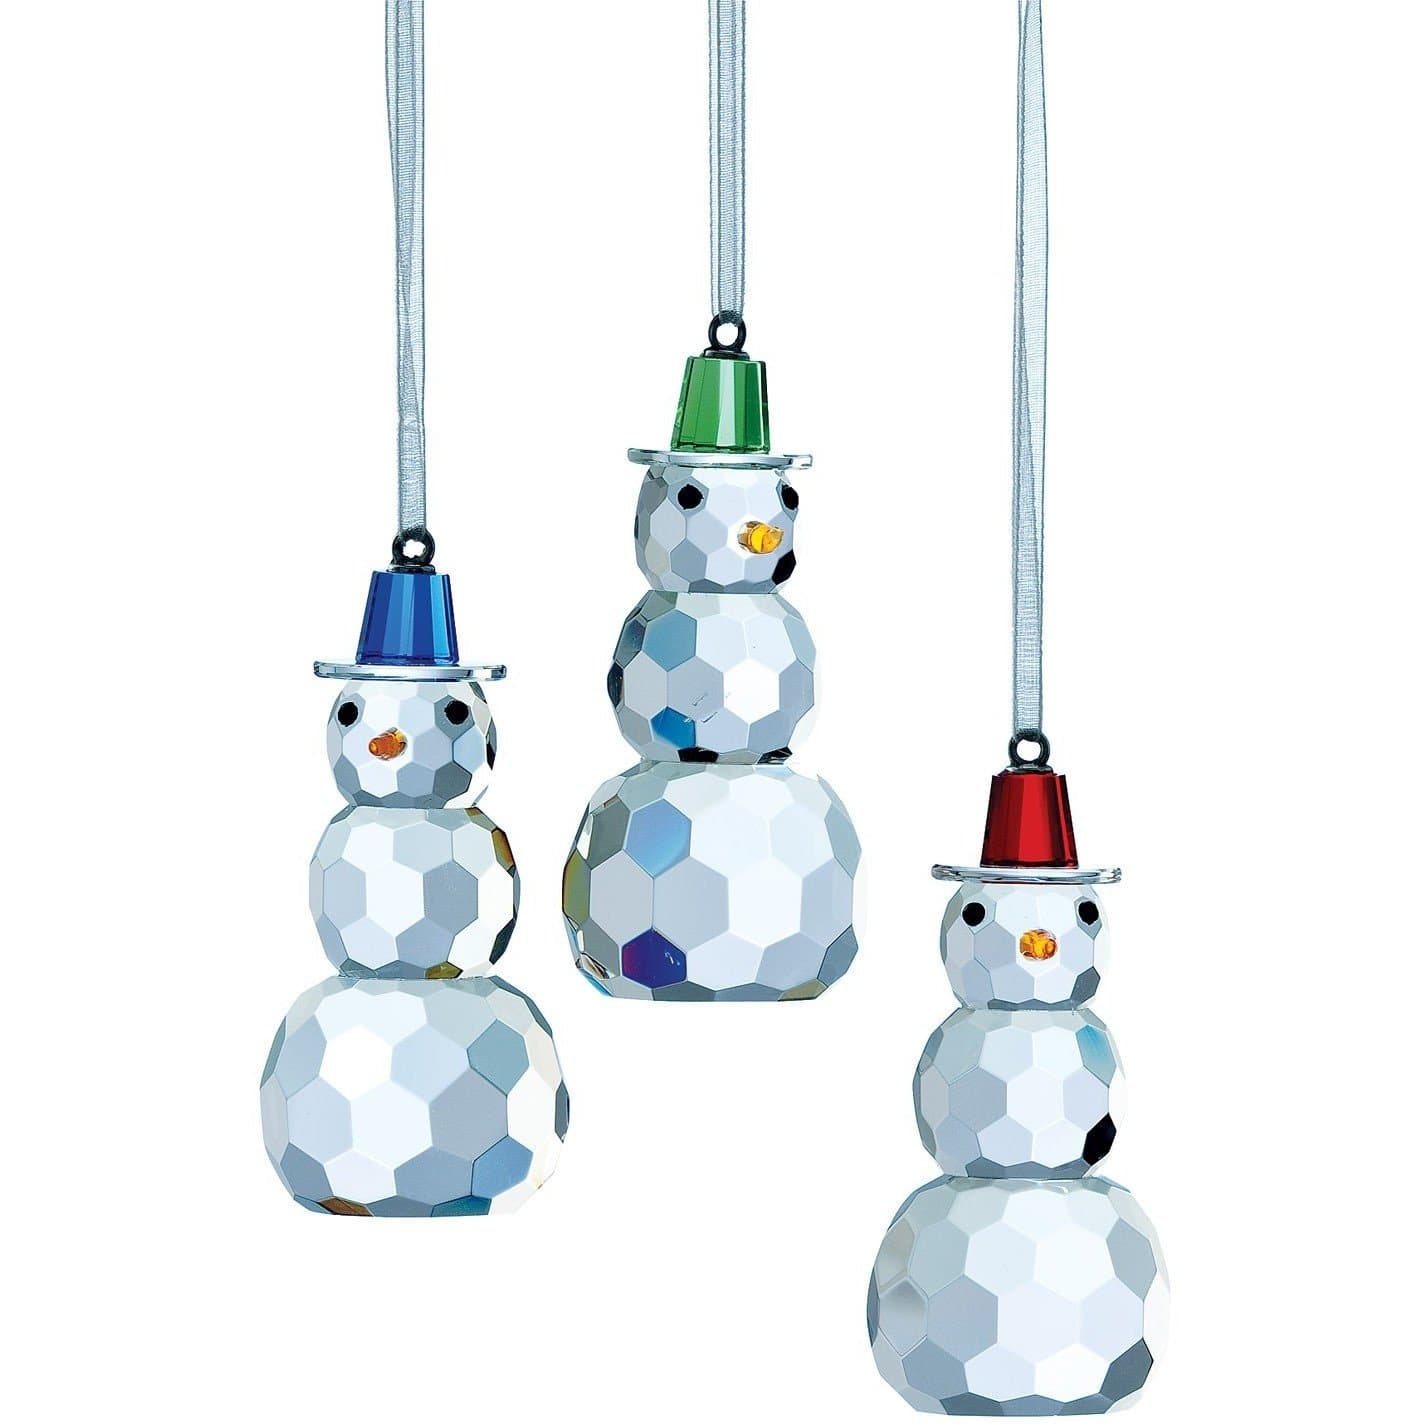 Magical Snowman Hanging Ornaments GMG09 - Galway Irish Crystal